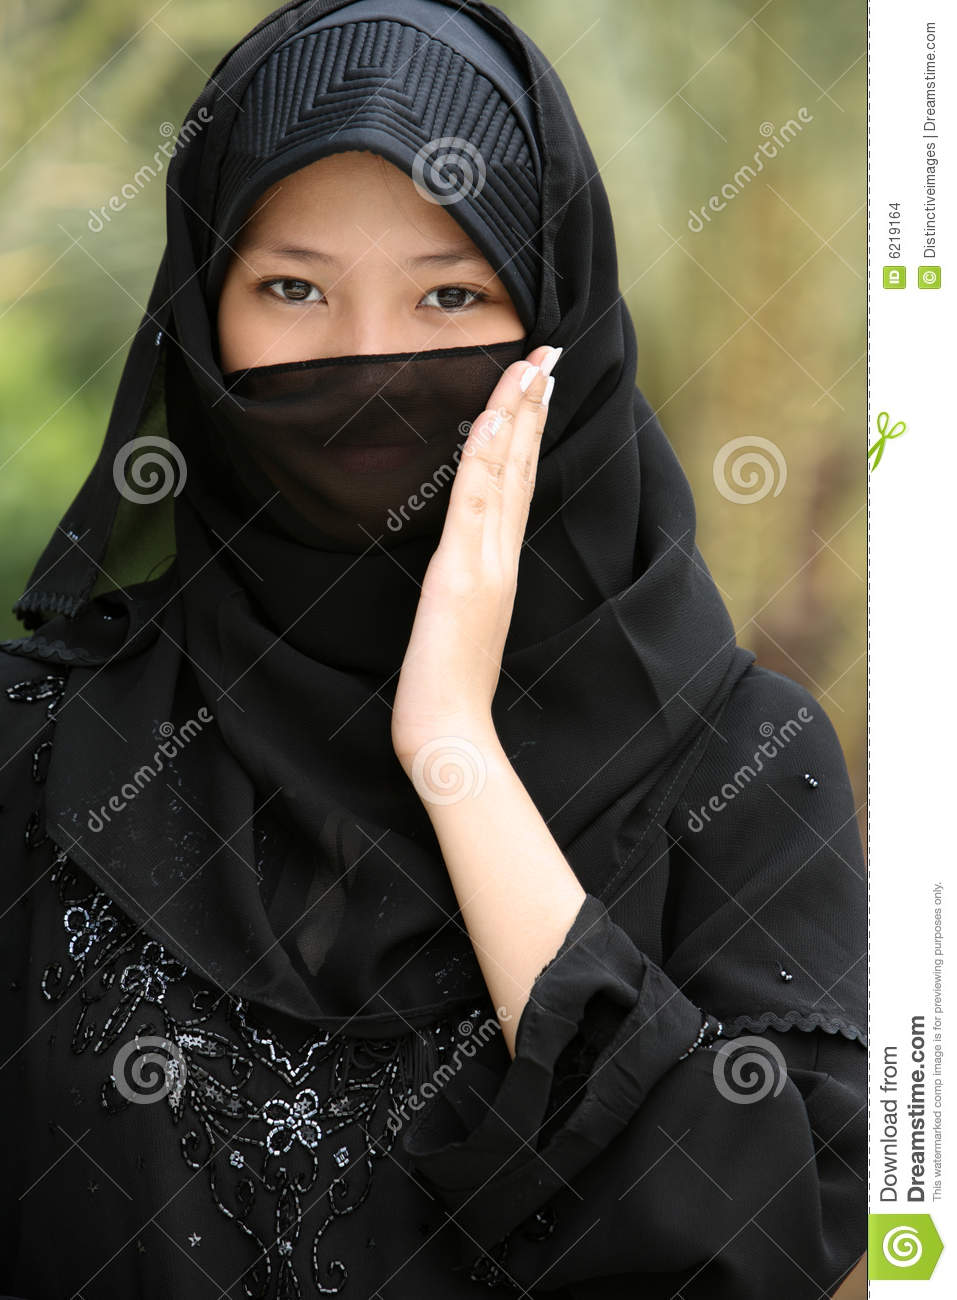 ratcliff muslim girl personals That's what you can expect when you date a muslim girl who carries her culture with her what men don't get about dating muslim women.